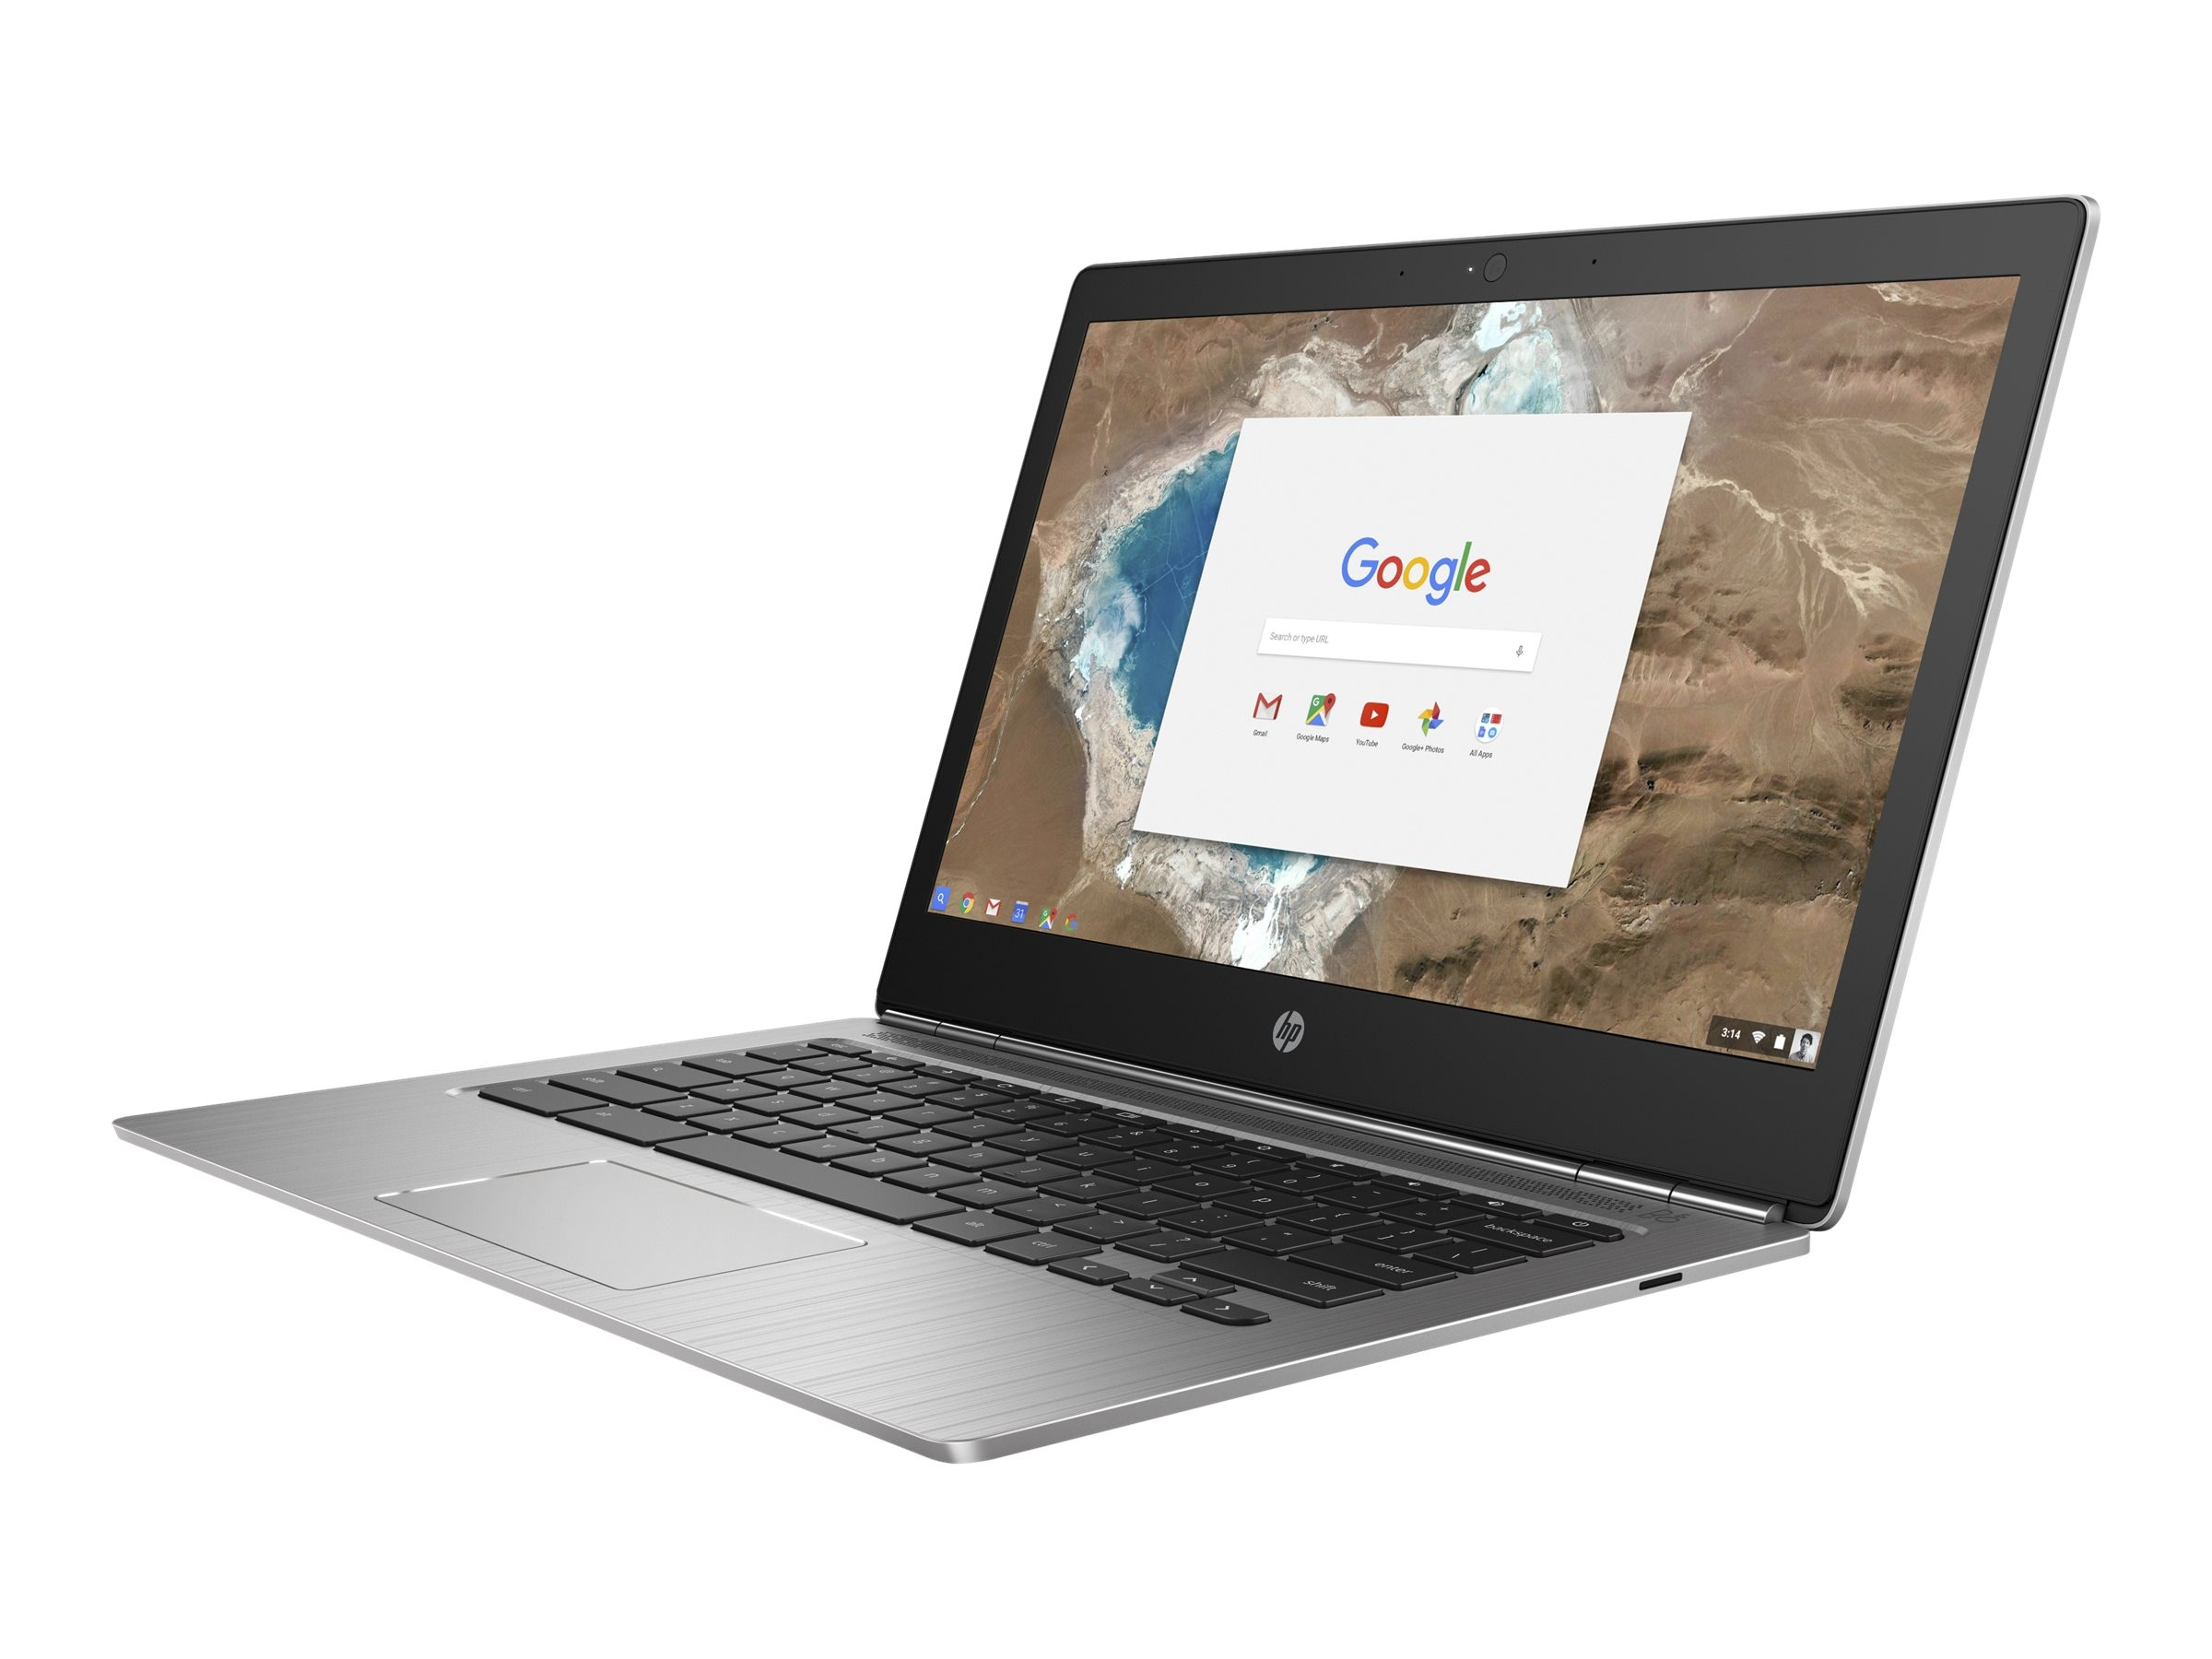 HP Chromebook 13 G1 1.5GHz Pentium 13.3in display